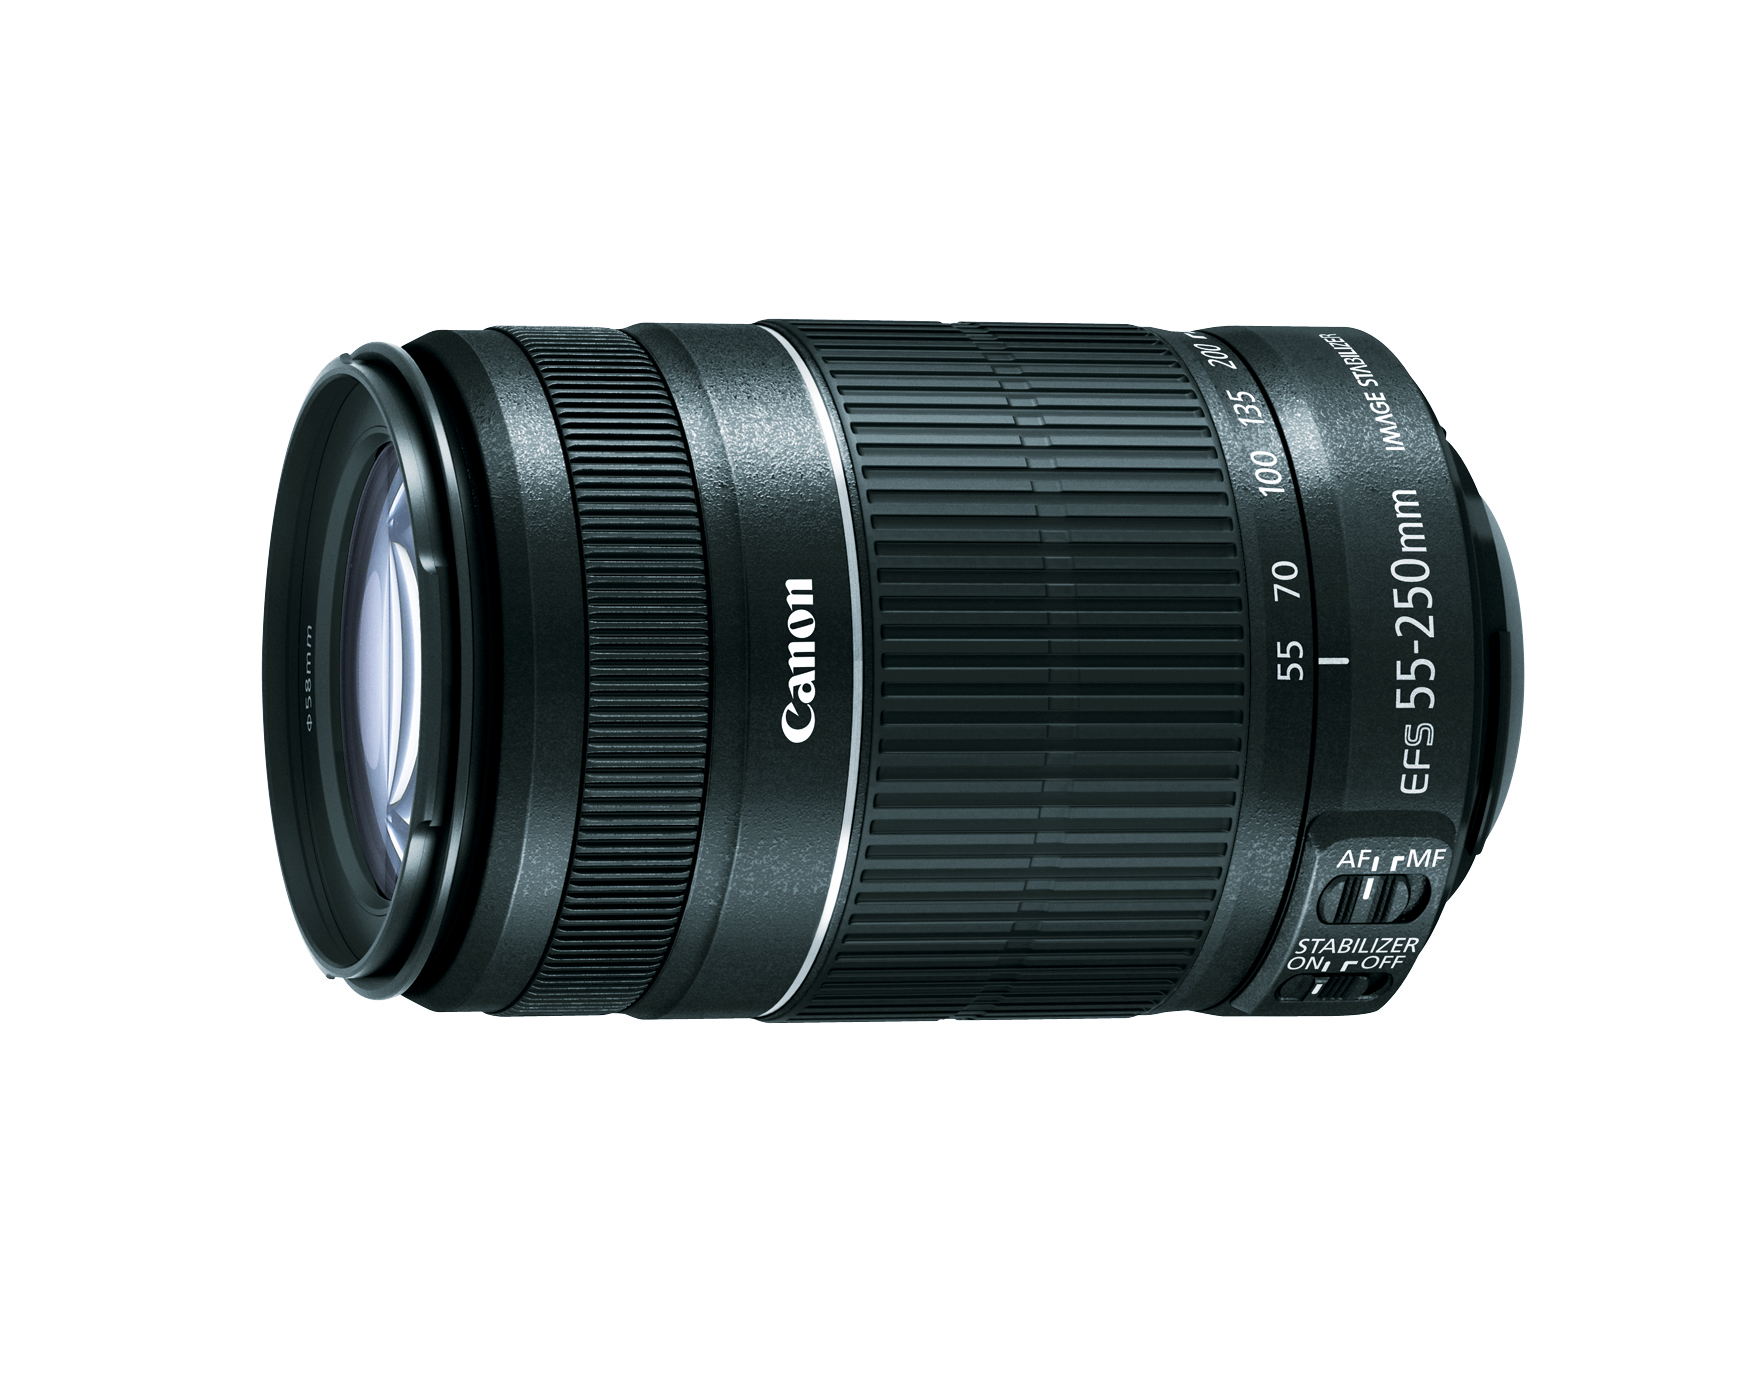 EF-S 55-250mm F/4-5.6 IS II